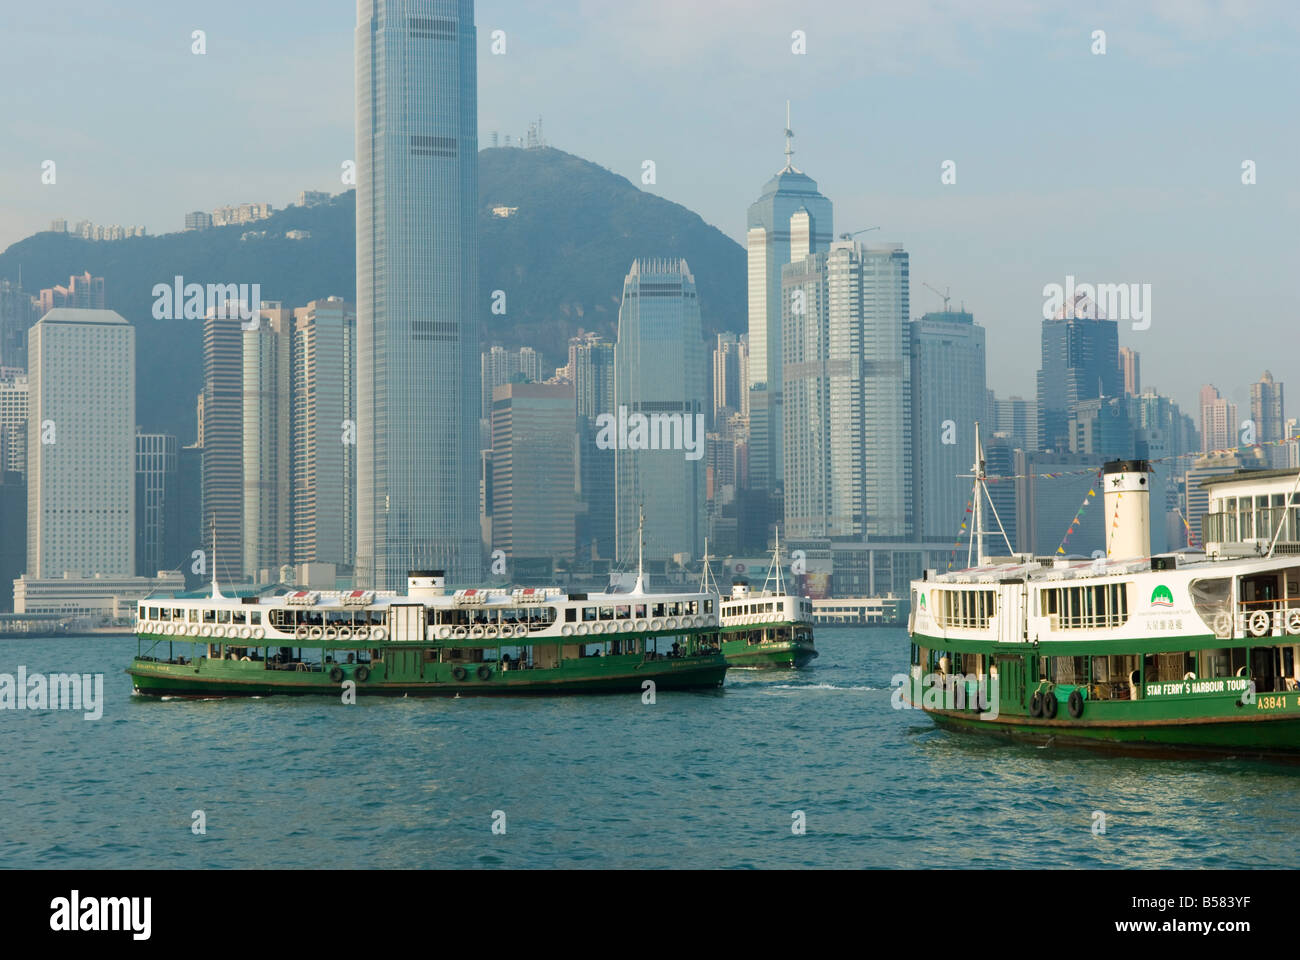 Star Ferries plying Victoria Harbour, Hong Kong, China, Asia - Stock Image